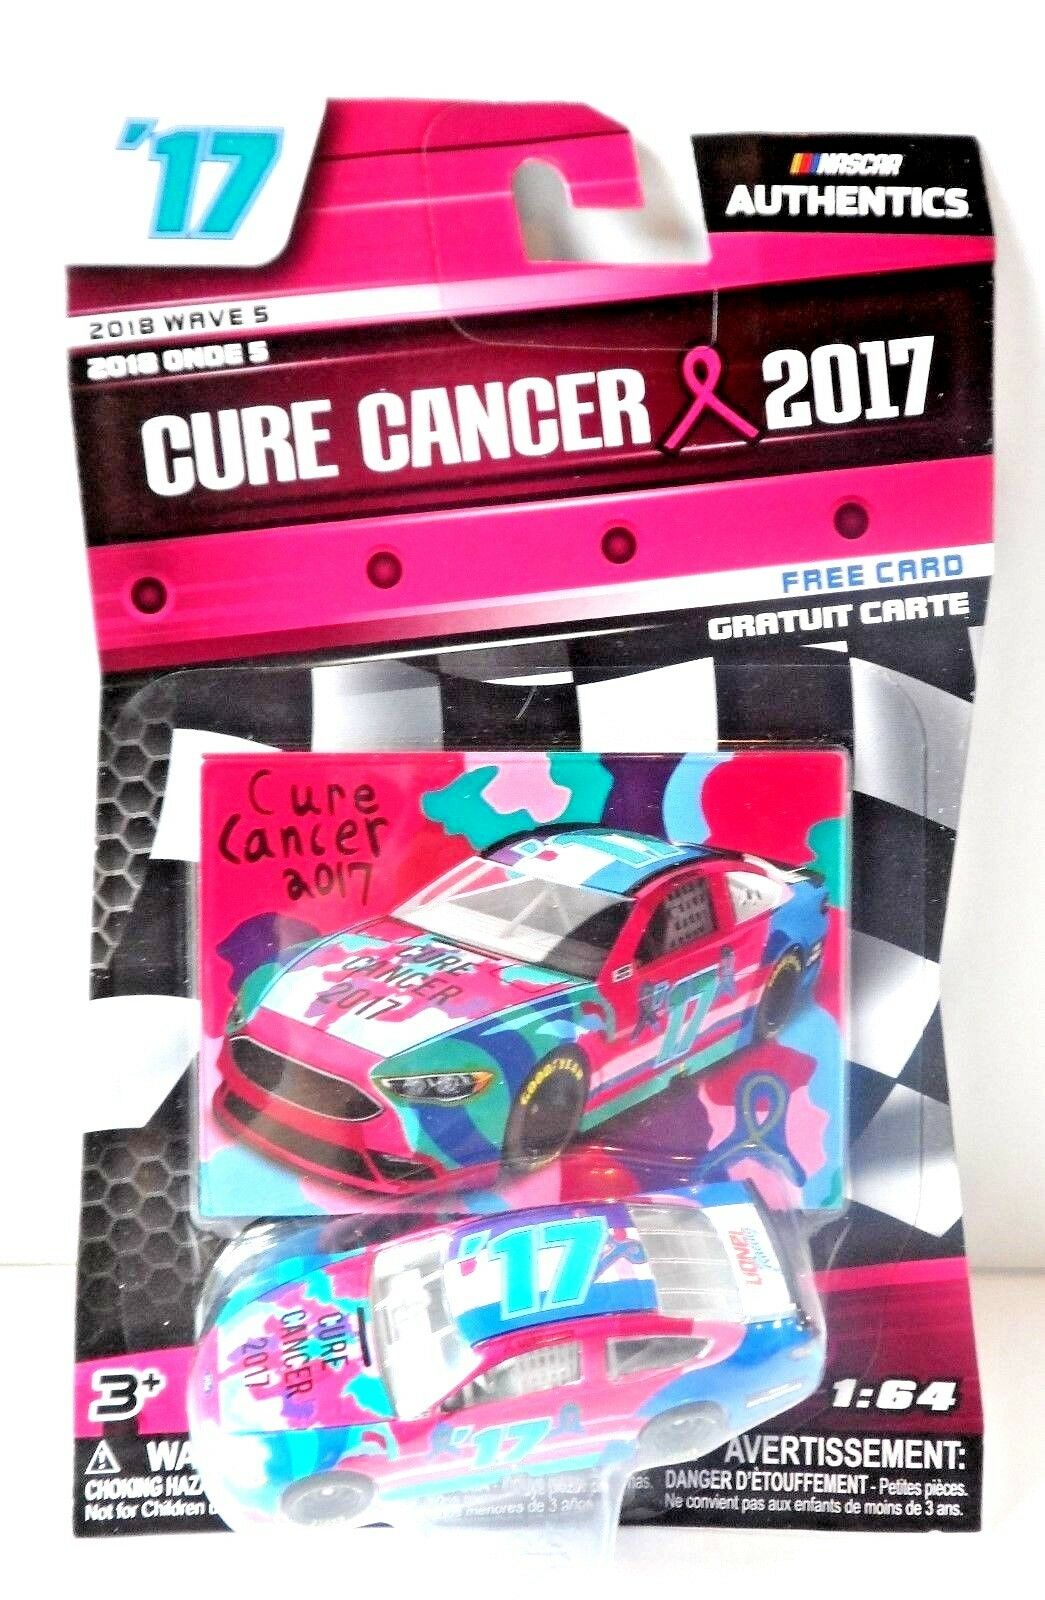 New 1 64 Nascar Authentics Wave 5 CURE CANCER 2017 Ford Fusion Trading Card Pink